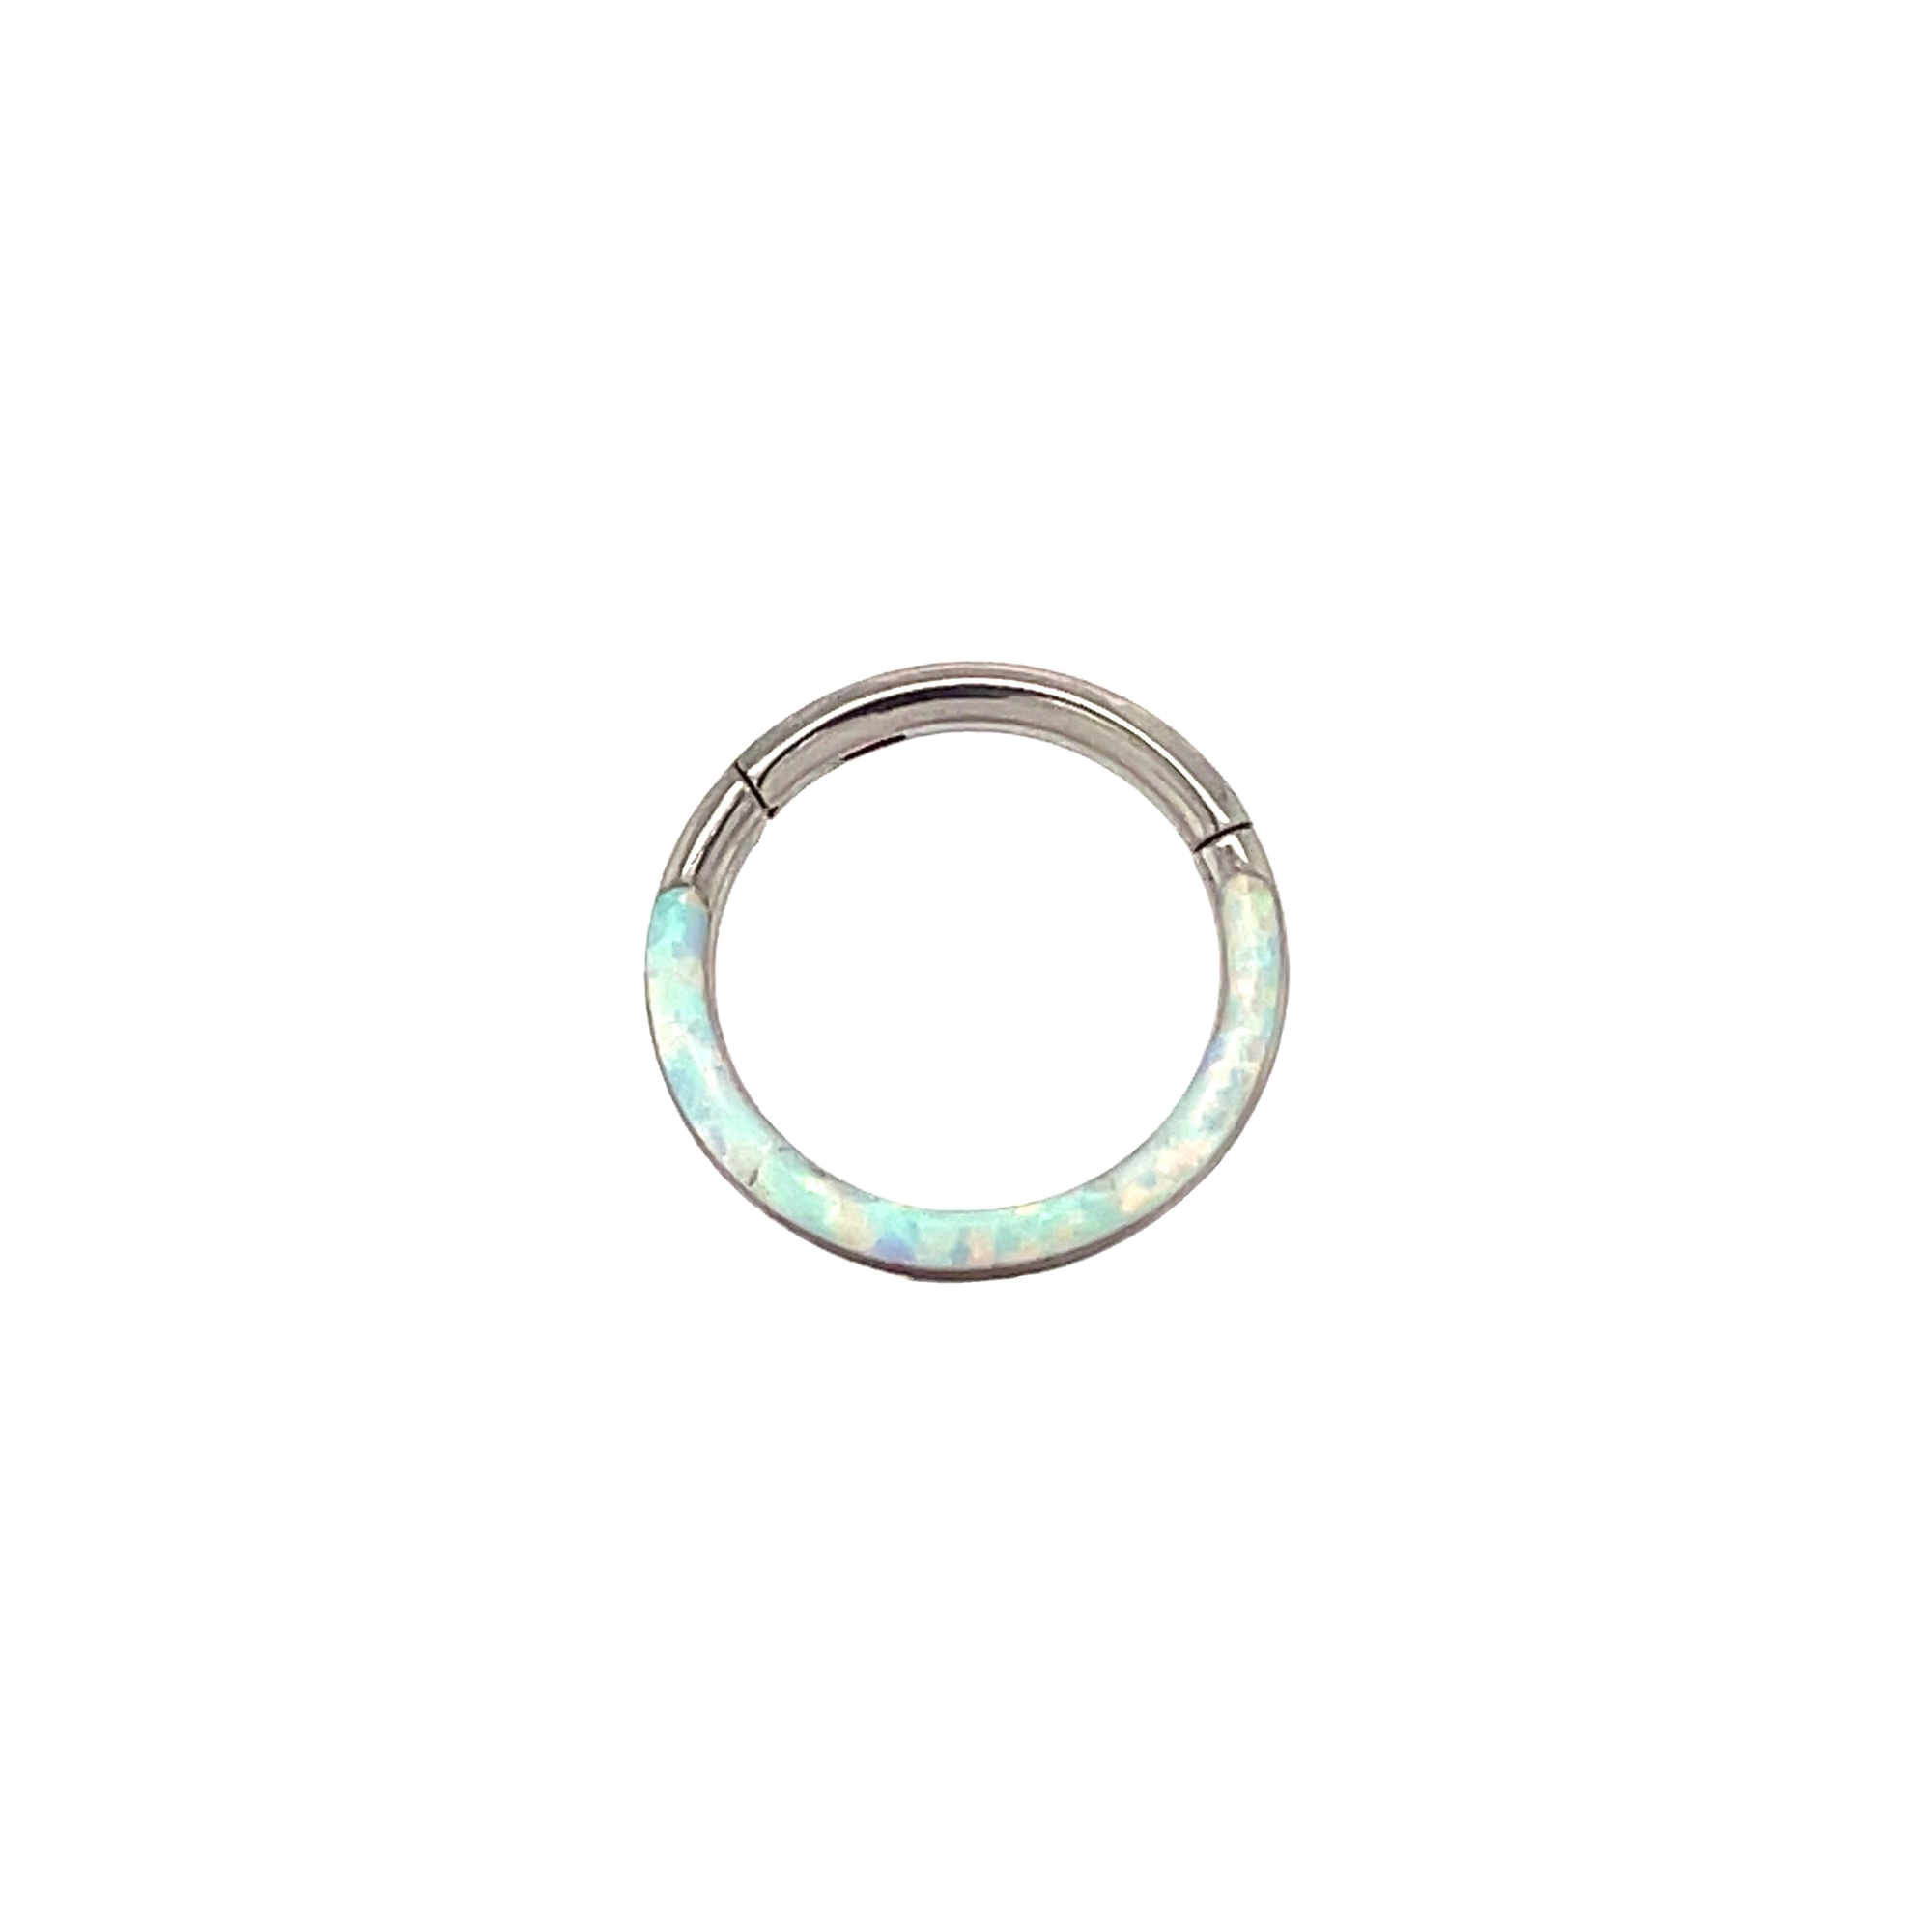 QualiTi Eos White Cabochon Opal Hinged Ring